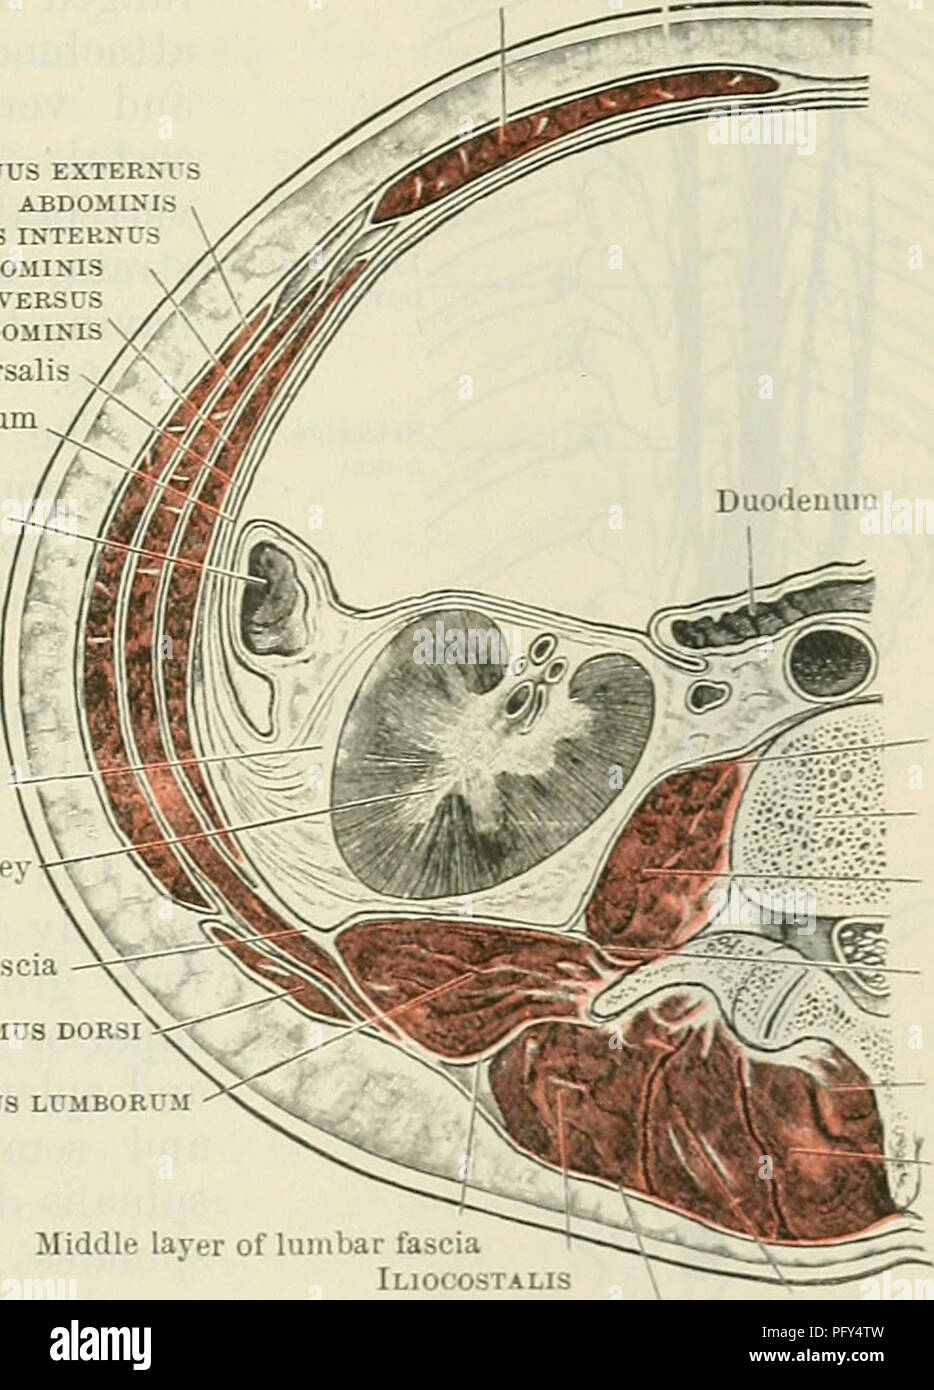 Cunninghams Text Book Of Anatomy Anatomy Axial Muscles 437 Line